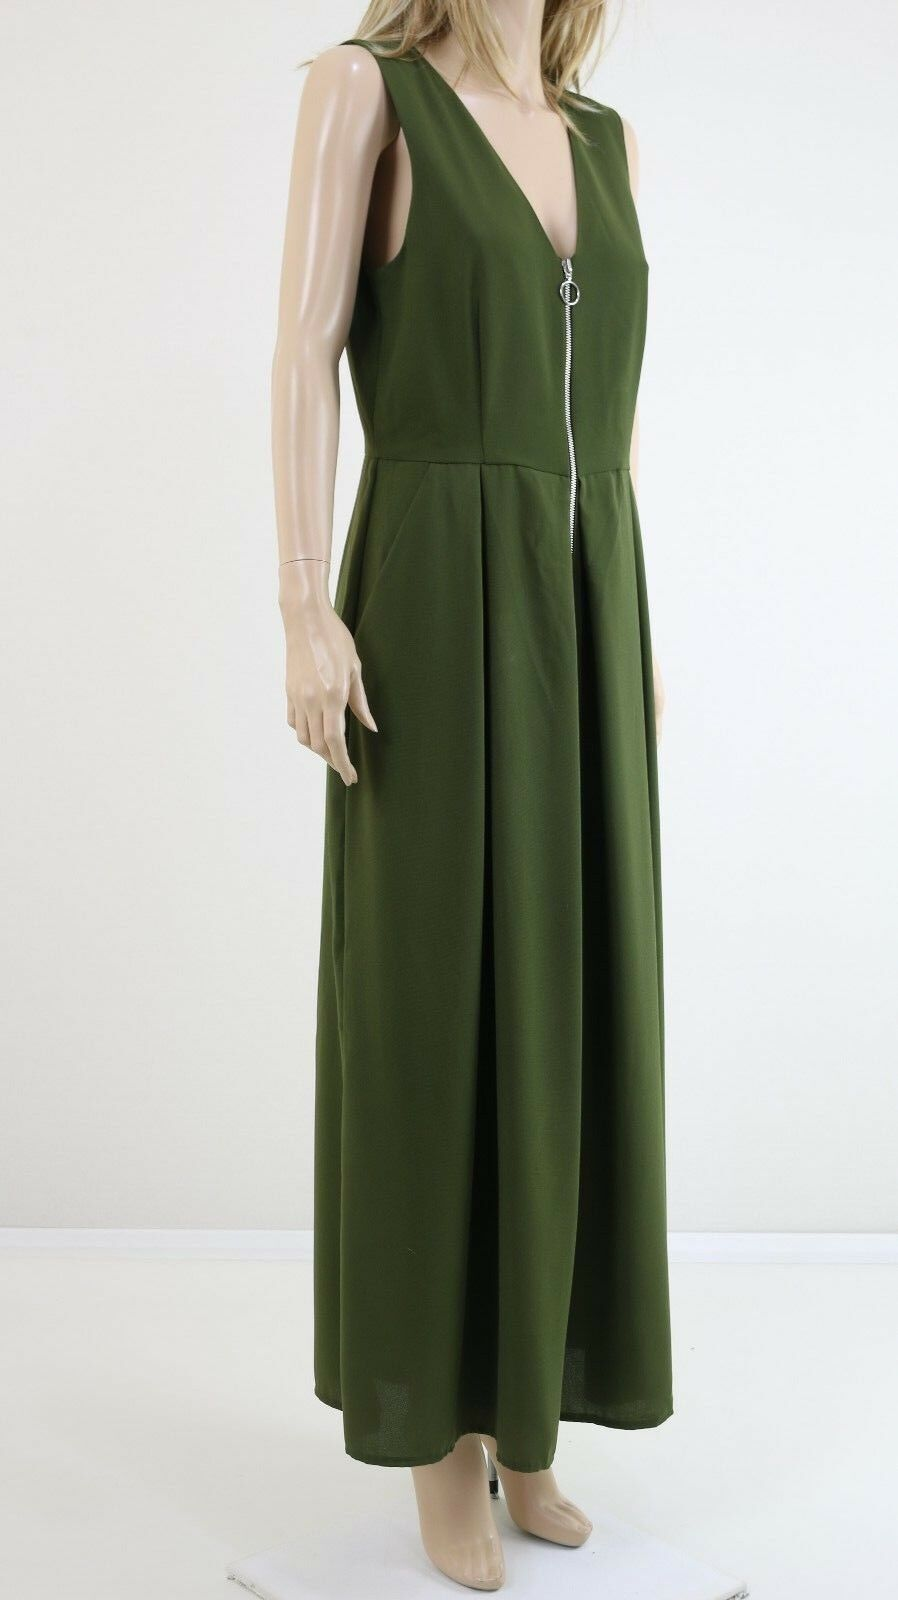 ASOS Women's Olive Green Party Jumpsuit with Ring Pull Detail RRP